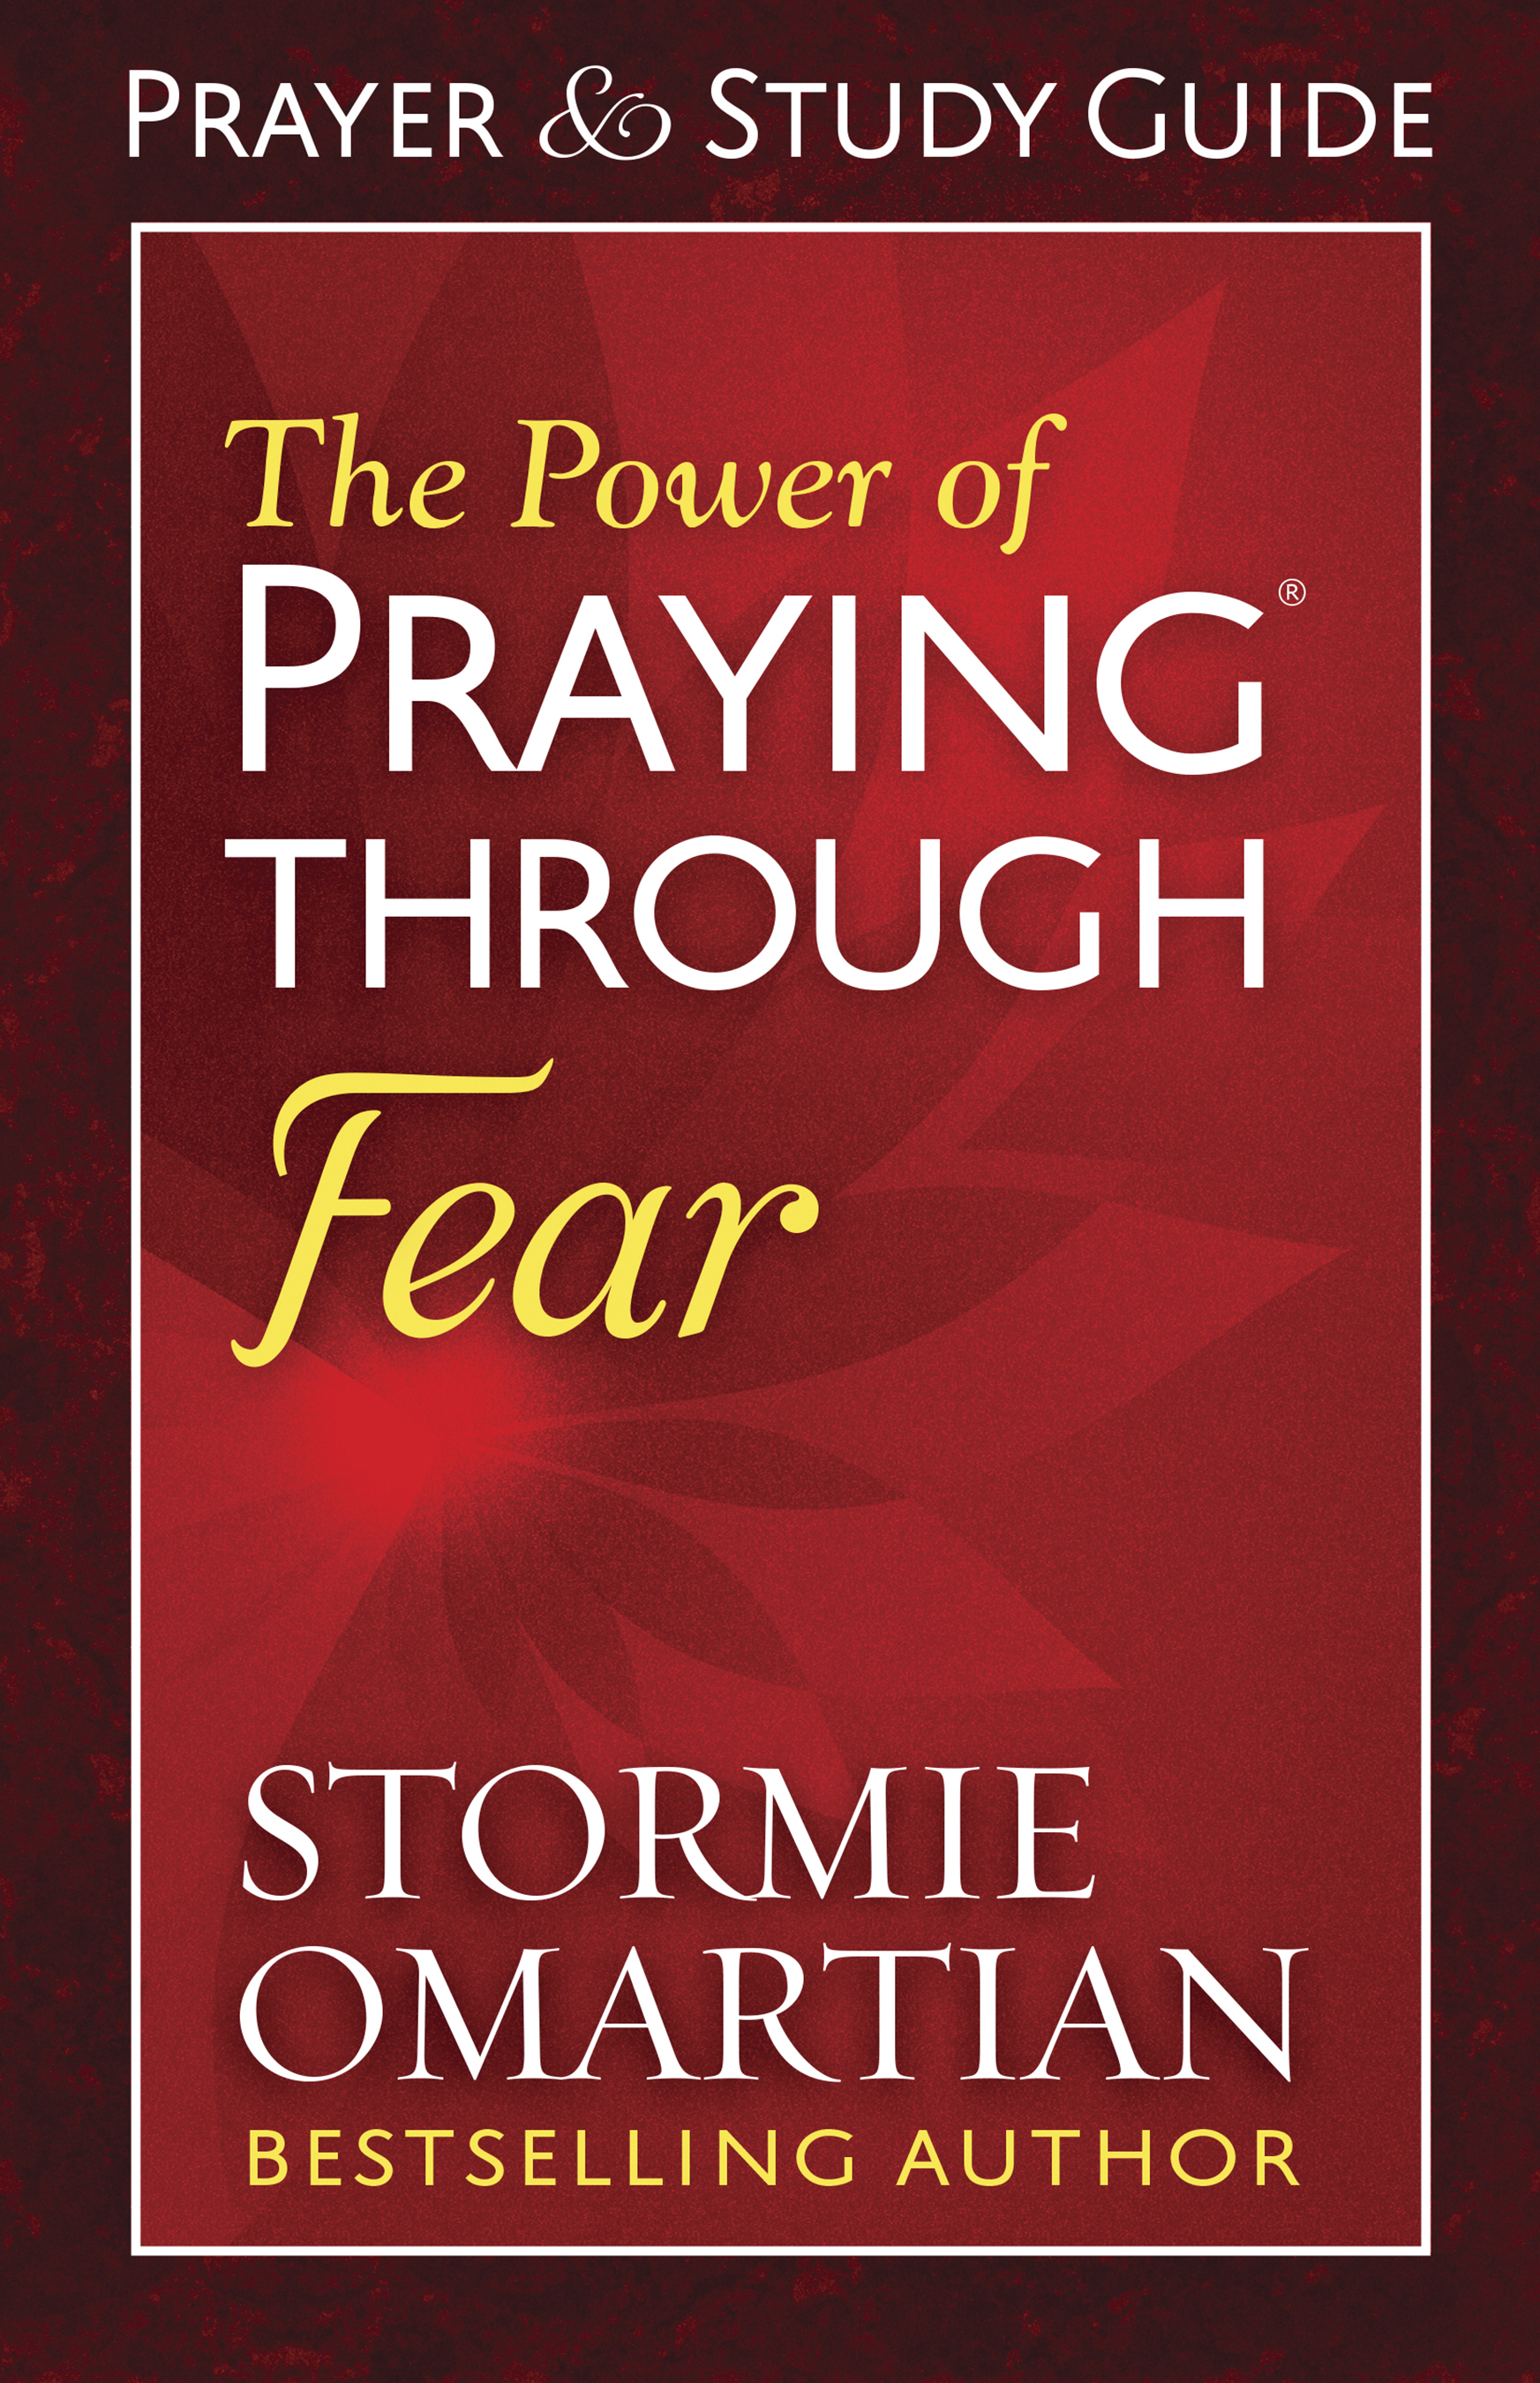 The Power of Praying® Through Fear Prayer and Study Guide. Image Gallery